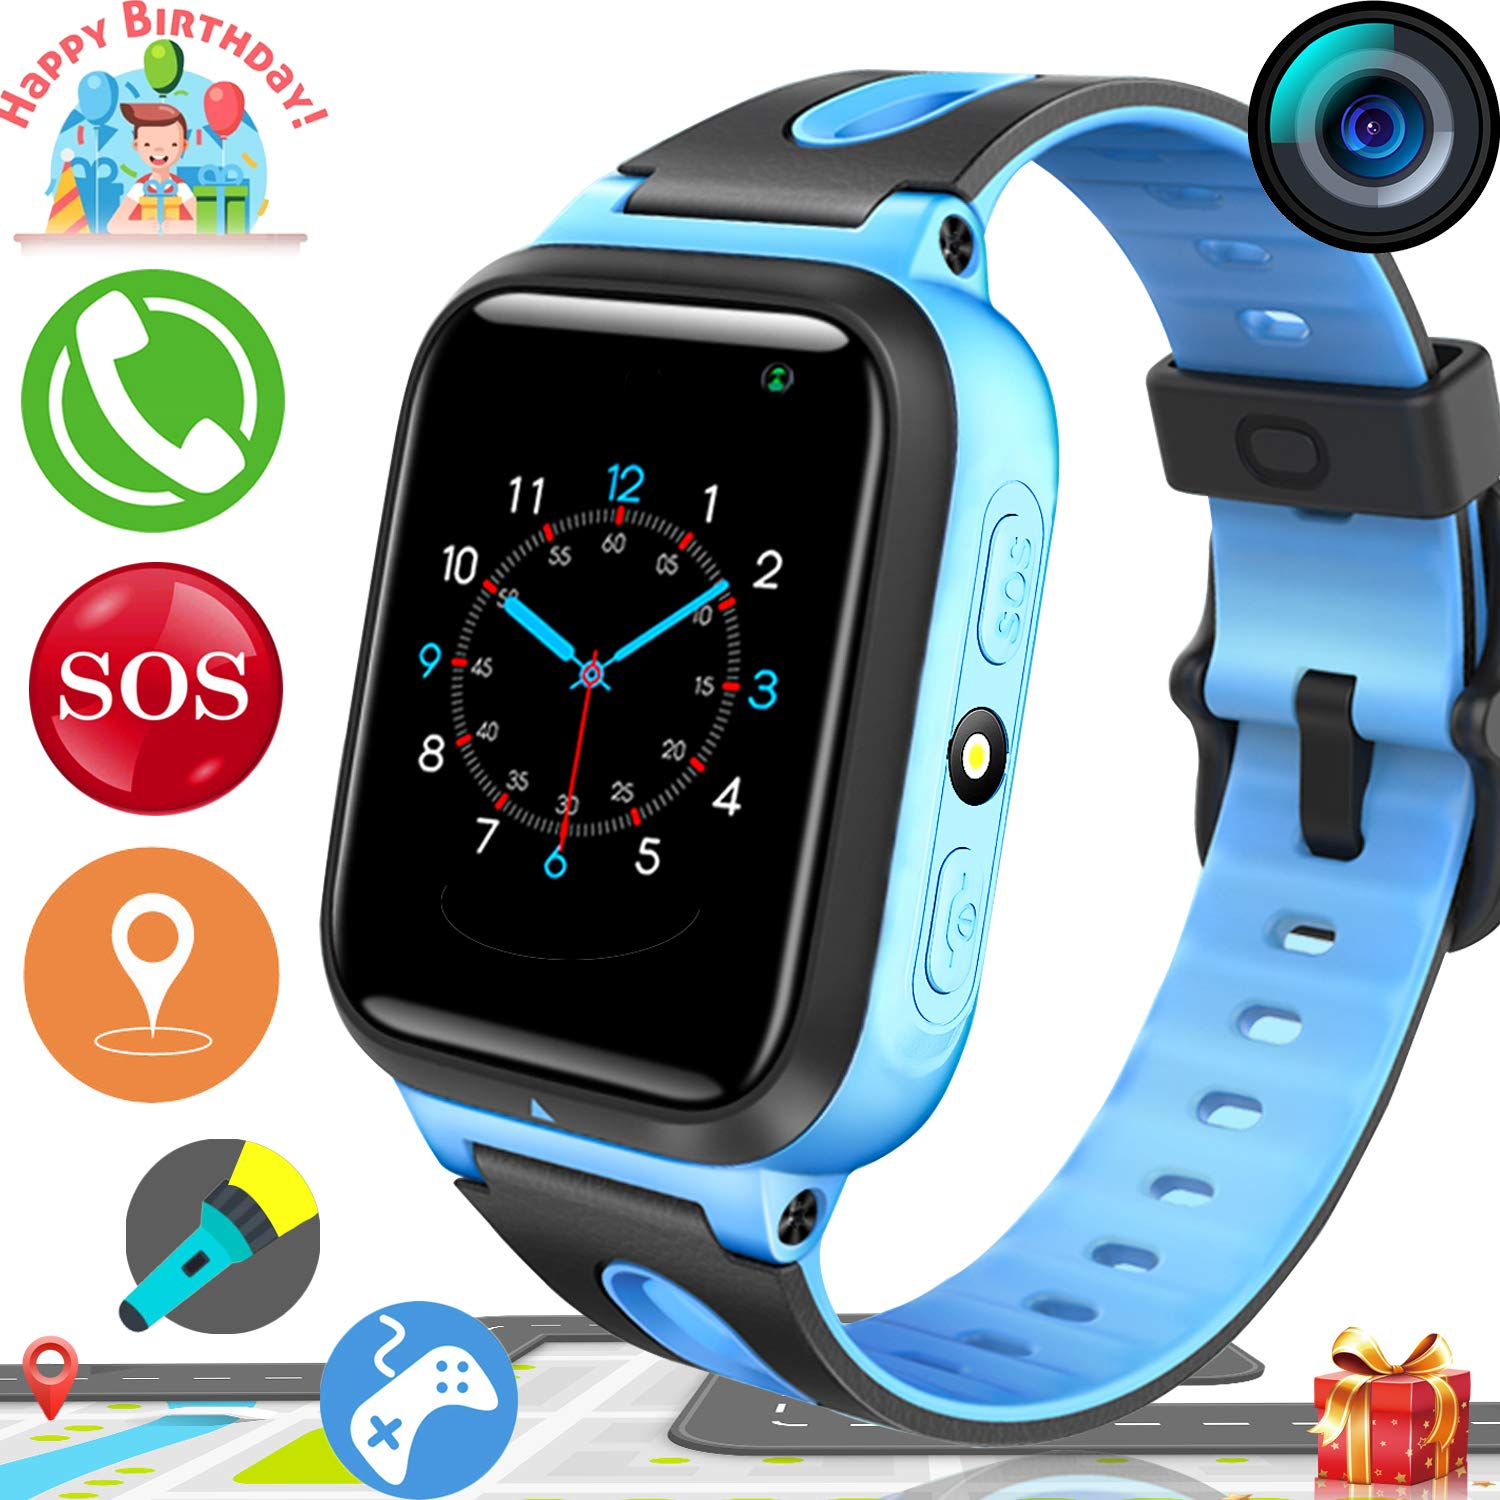 2019 UPGRADES Kids Smart Watch Phone GPS Tracker for Kids Boys Girls Game Watch with Anti-Lost SOS Camera Flashlight 1.54 Touch Screen Cell phone ...